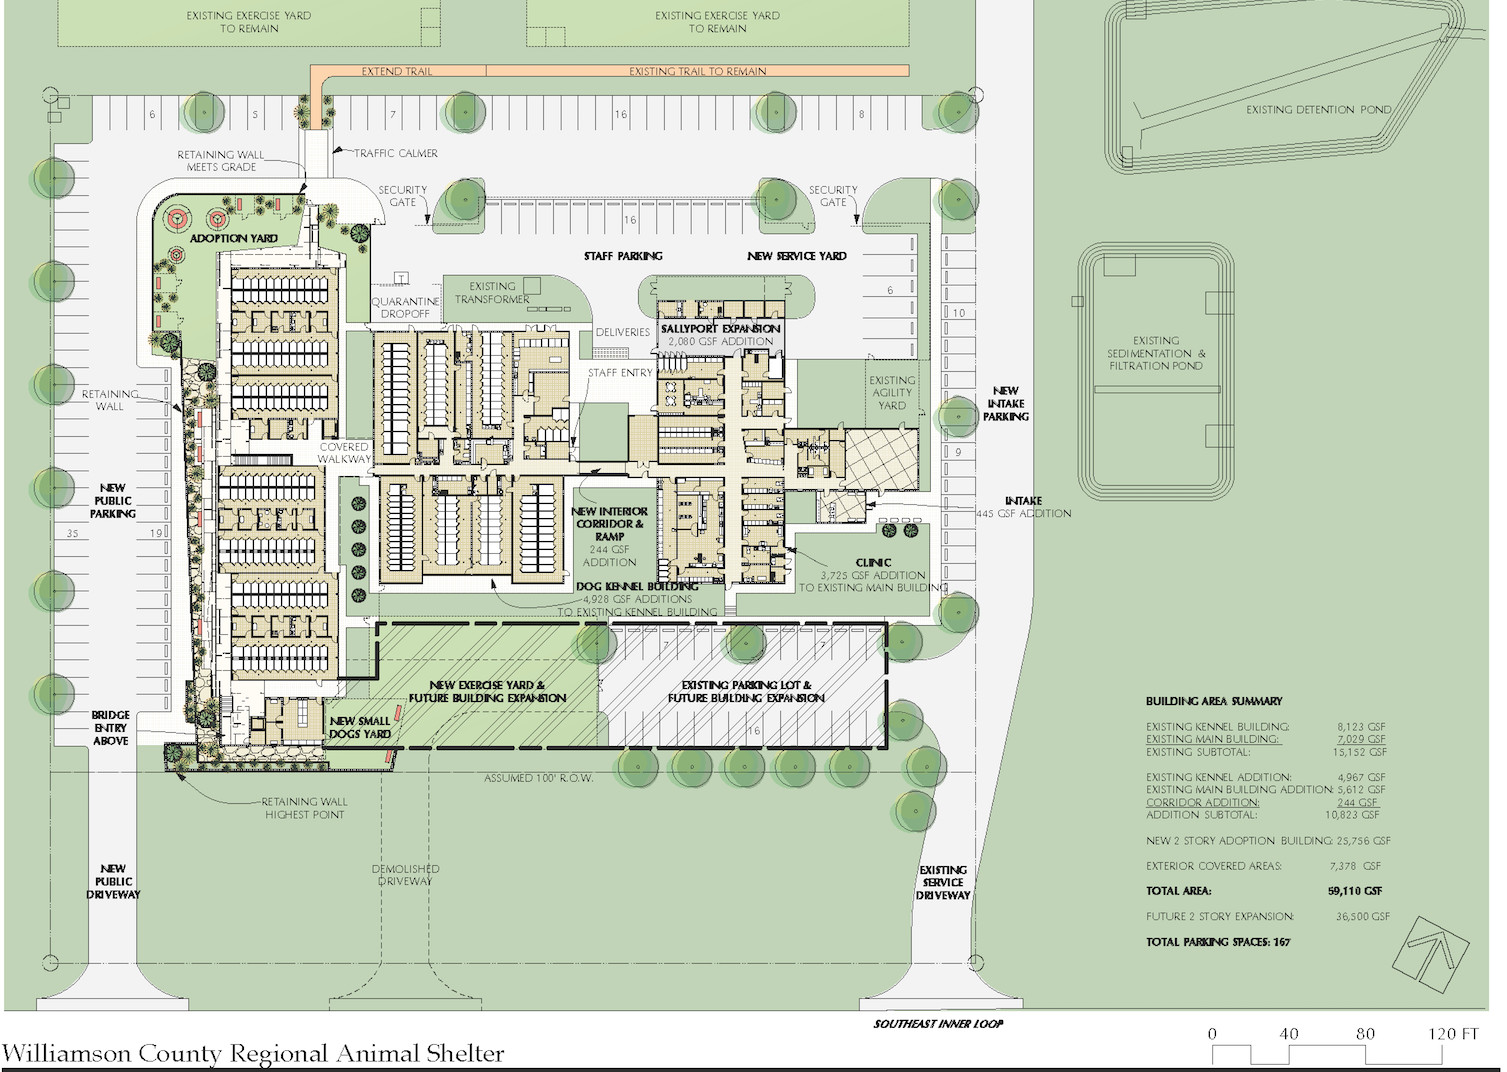 This schematic site plan shows what the updated shelter will look like.